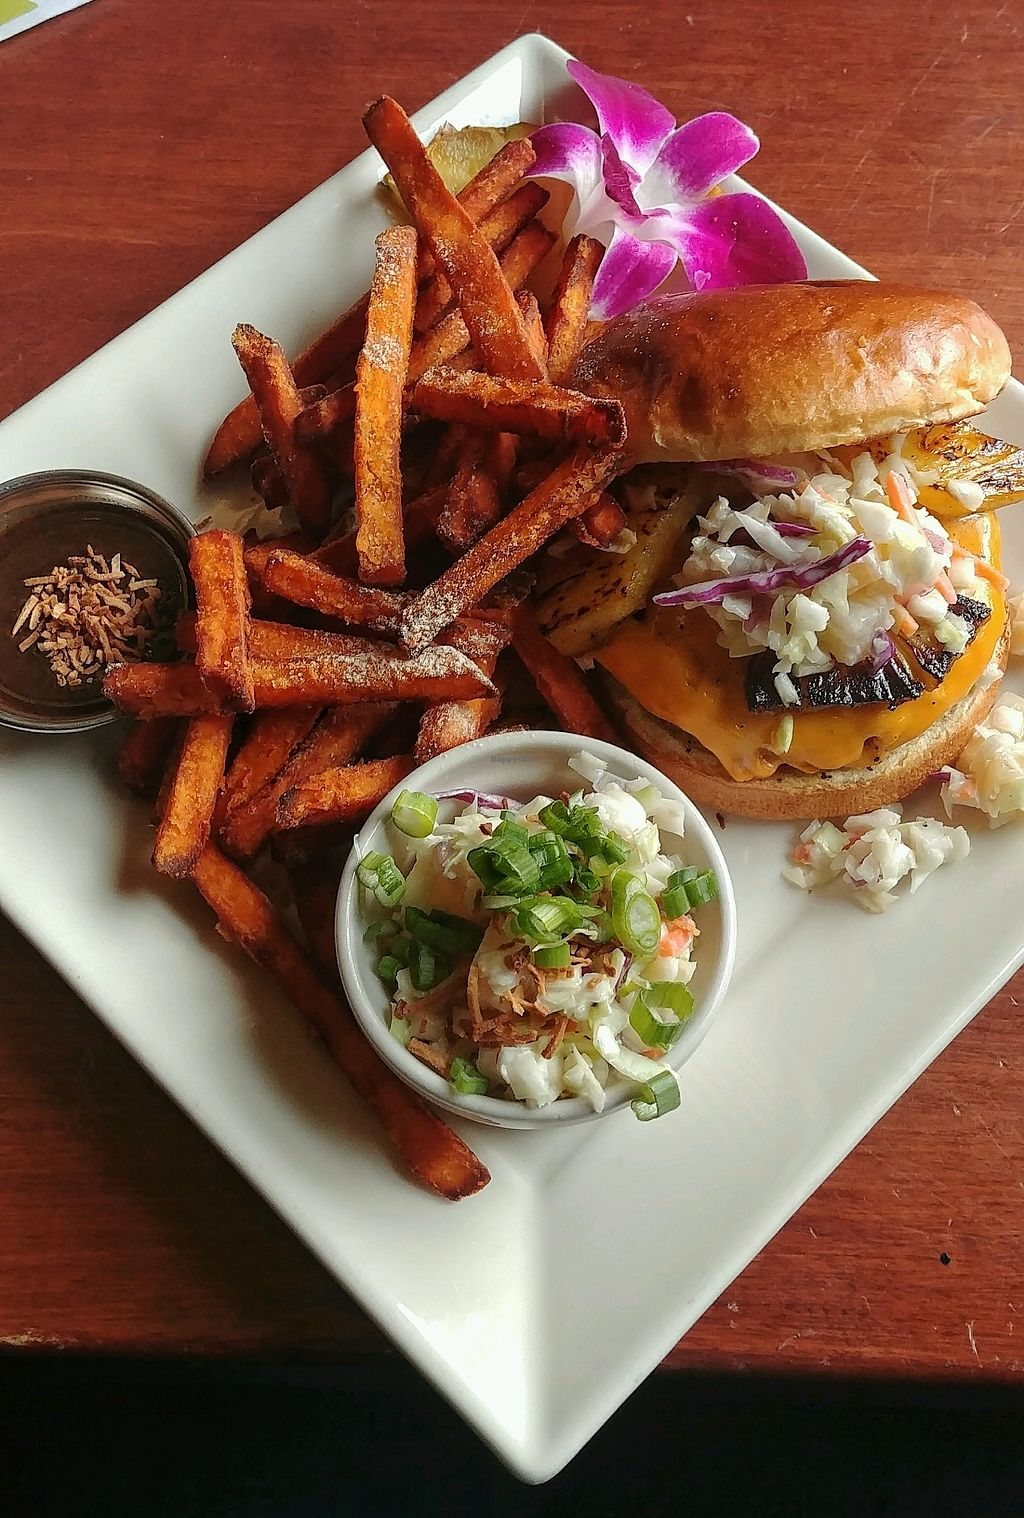 """Photo of The Tilted Tiki  by <a href=""""/members/profile/TabathaRichfield"""">TabathaRichfield</a> <br/>vegan Burger <br/> February 18, 2018  - <a href='/contact/abuse/image/112257/361070'>Report</a>"""